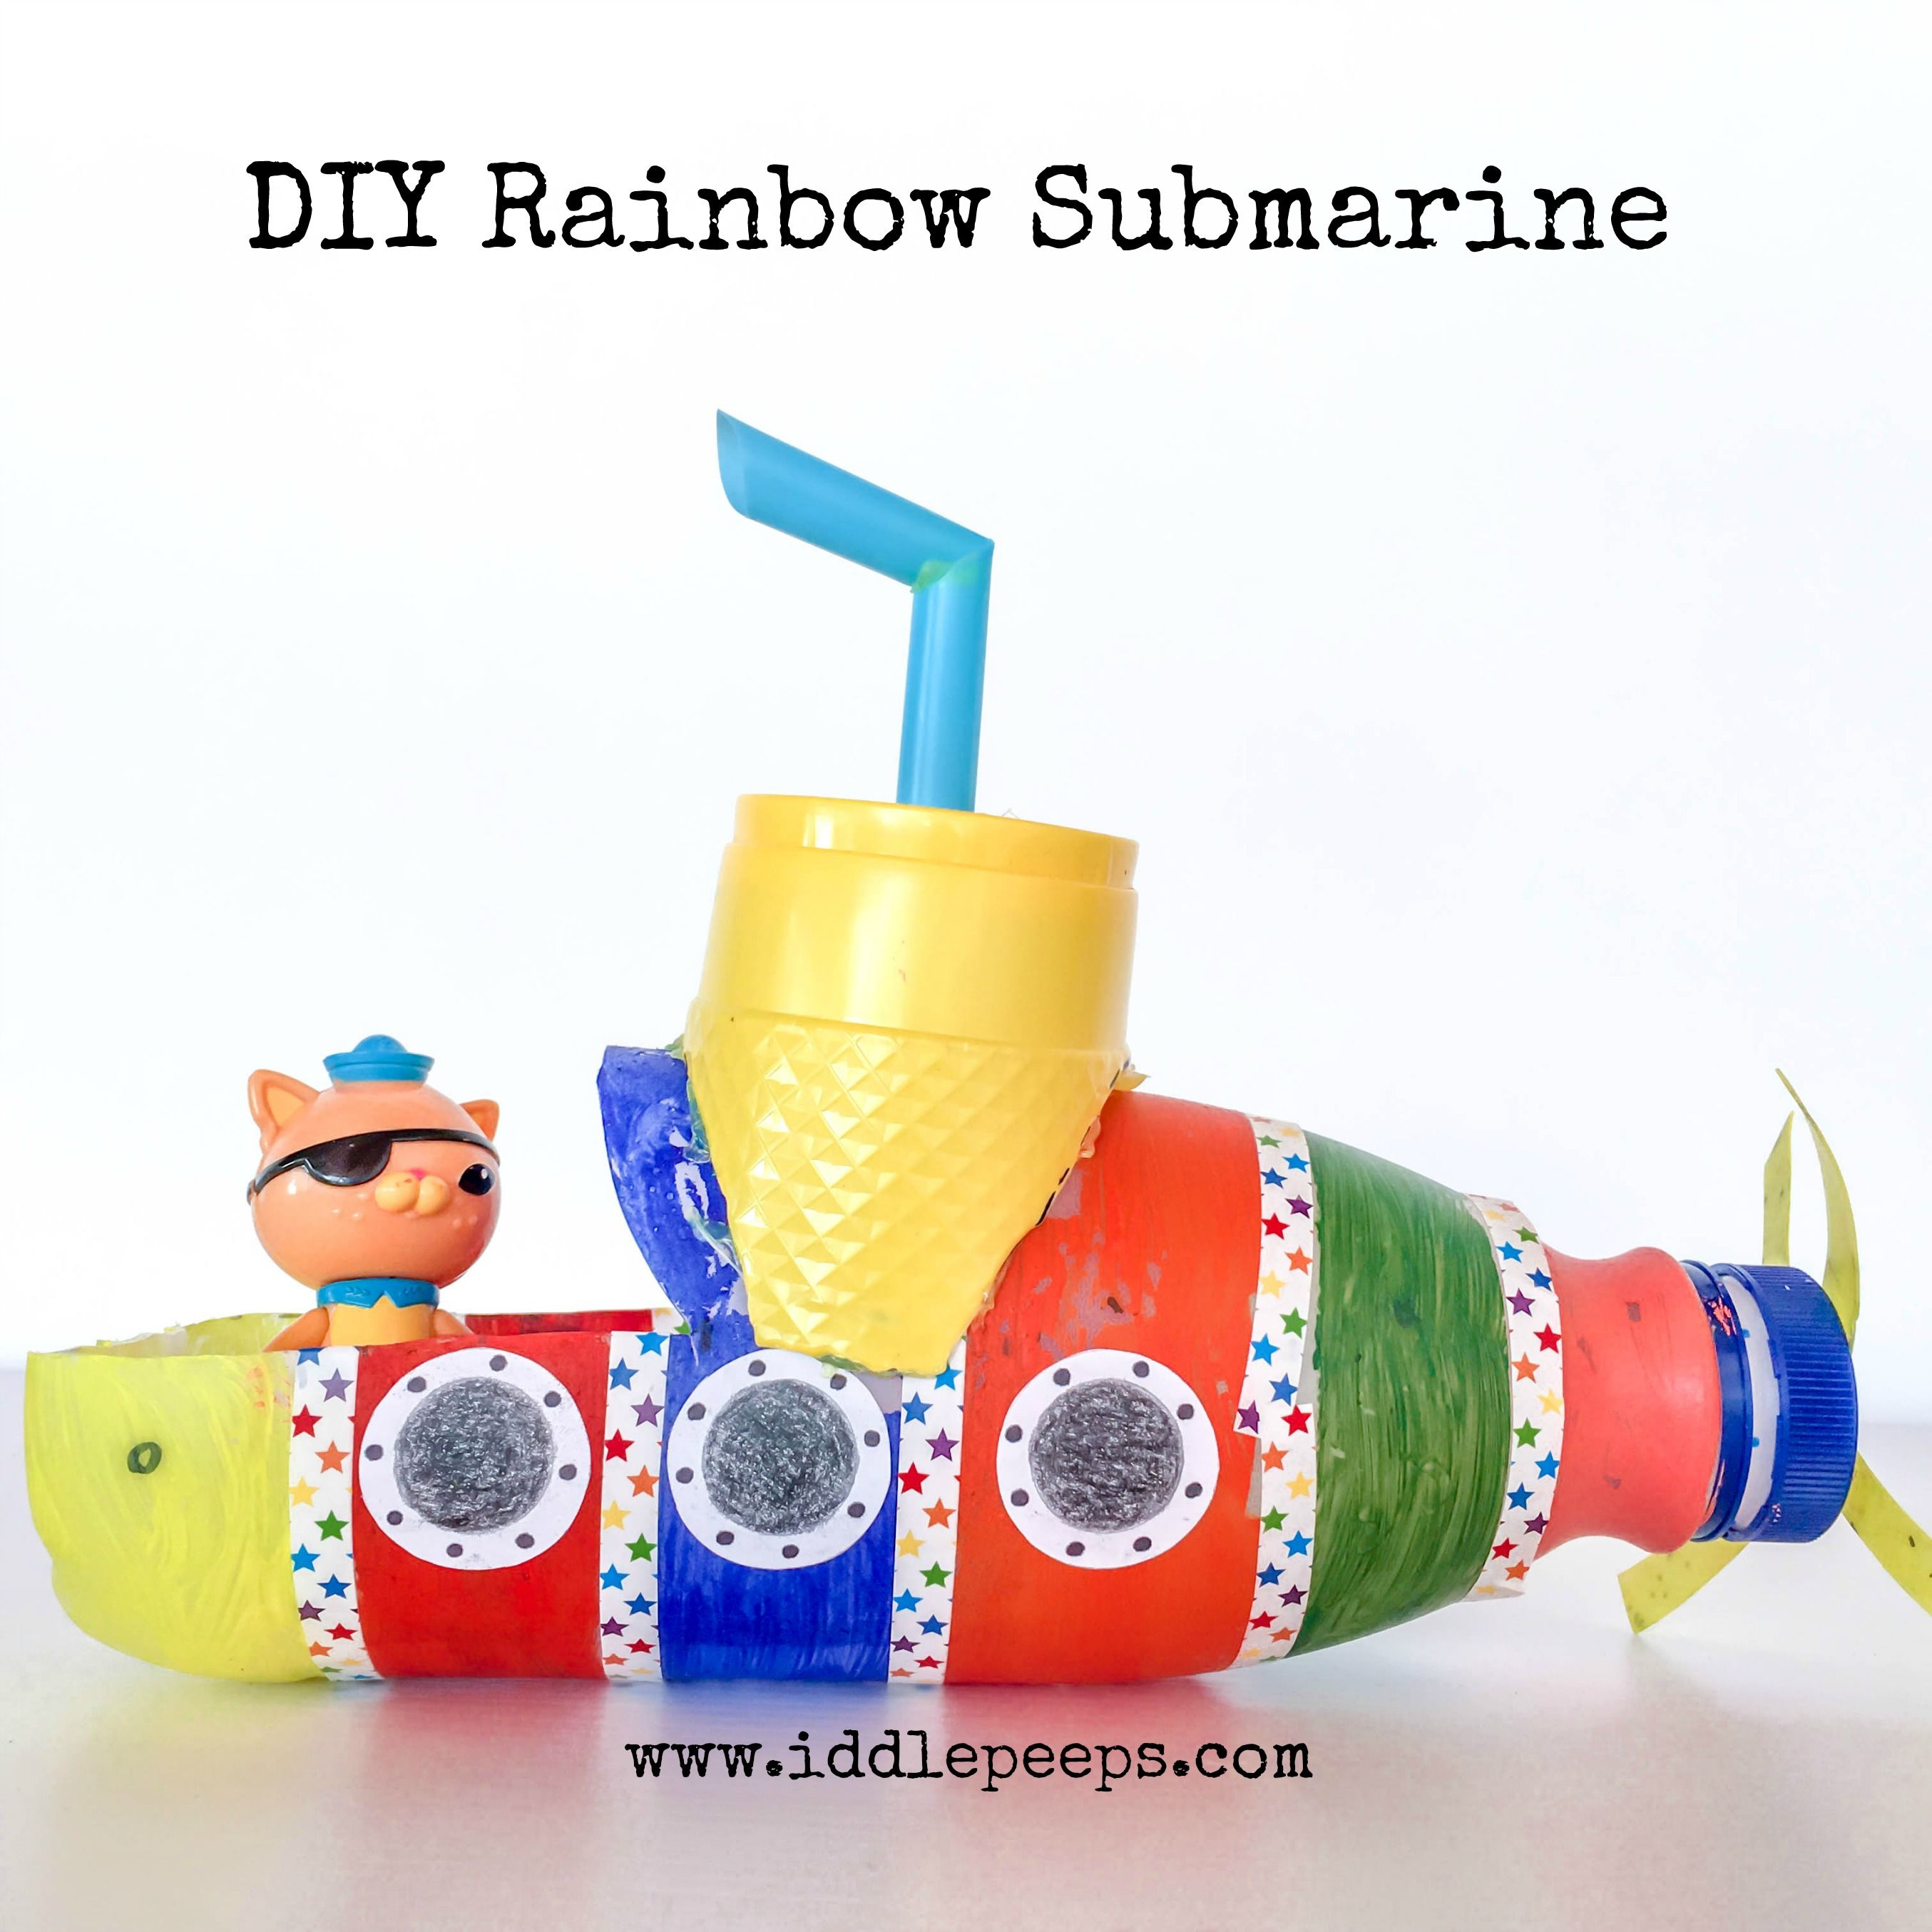 Diy rainbow submarine rainbows craft and craft activities for Homemade recycling projects